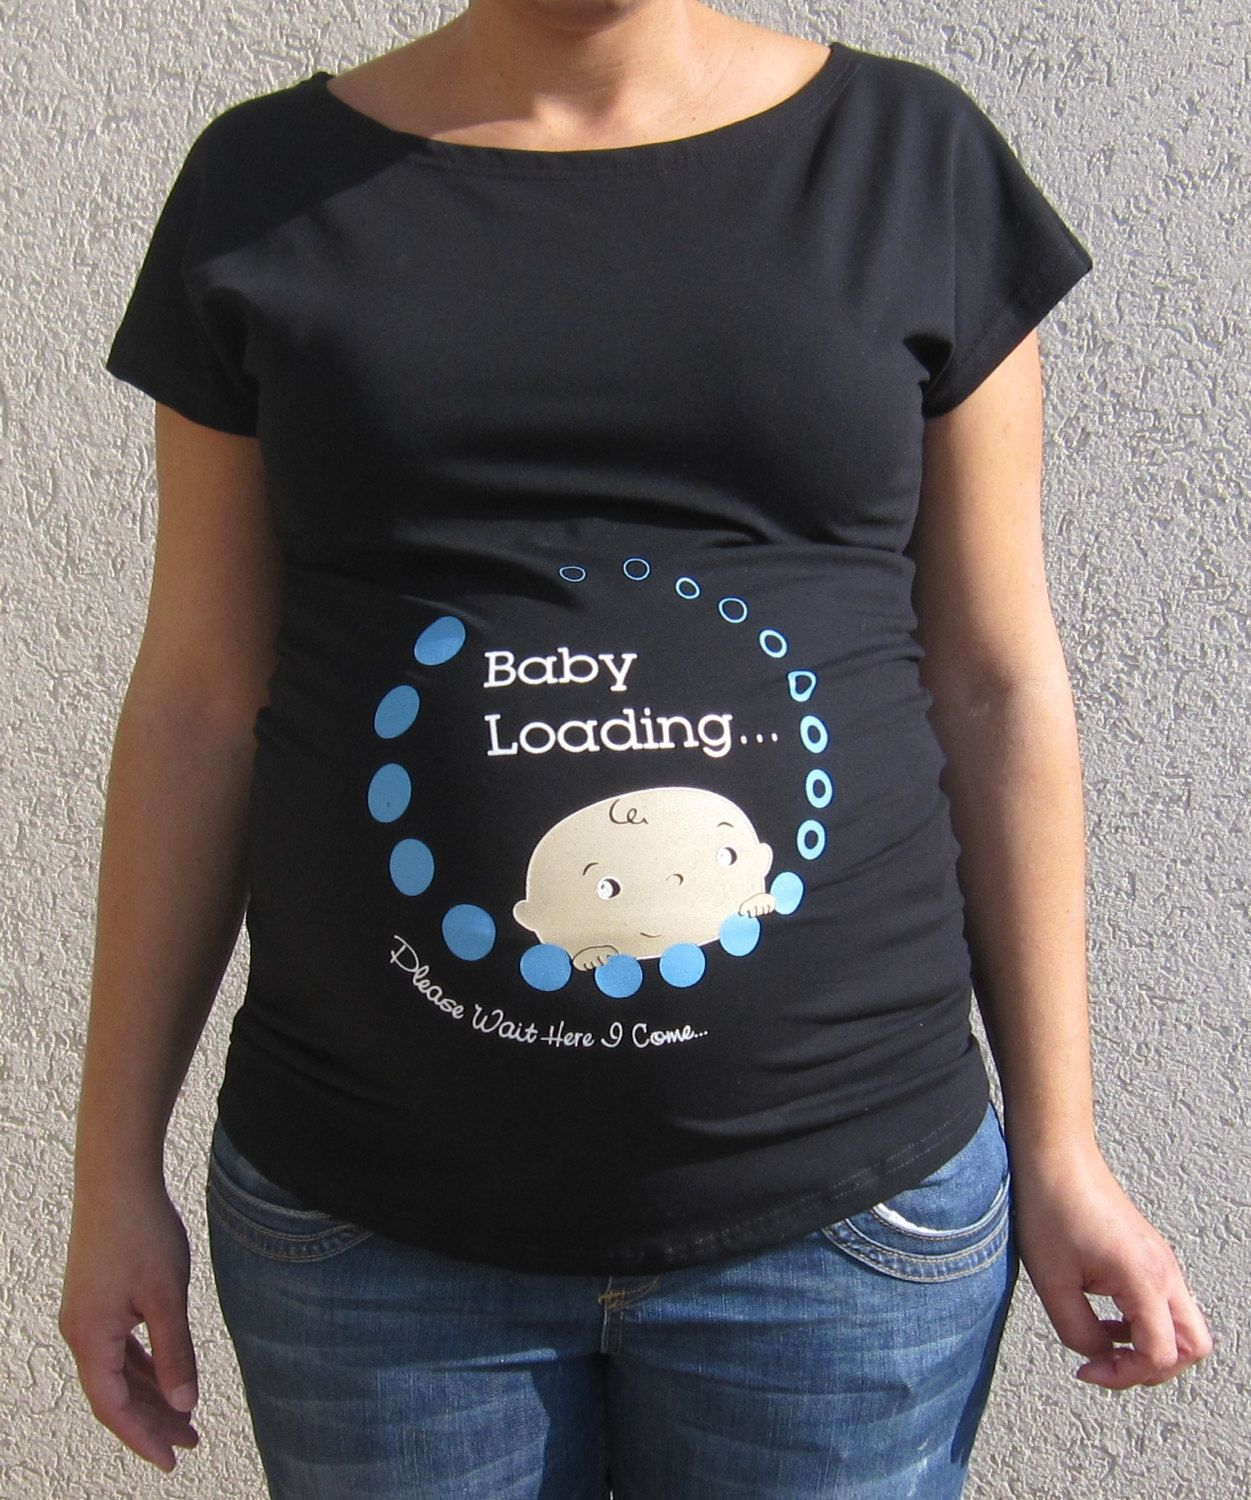 5e799a082ec83 Funny 'Baby Loading' Maternity Shirts for Cool Moms | Robin Williams ...